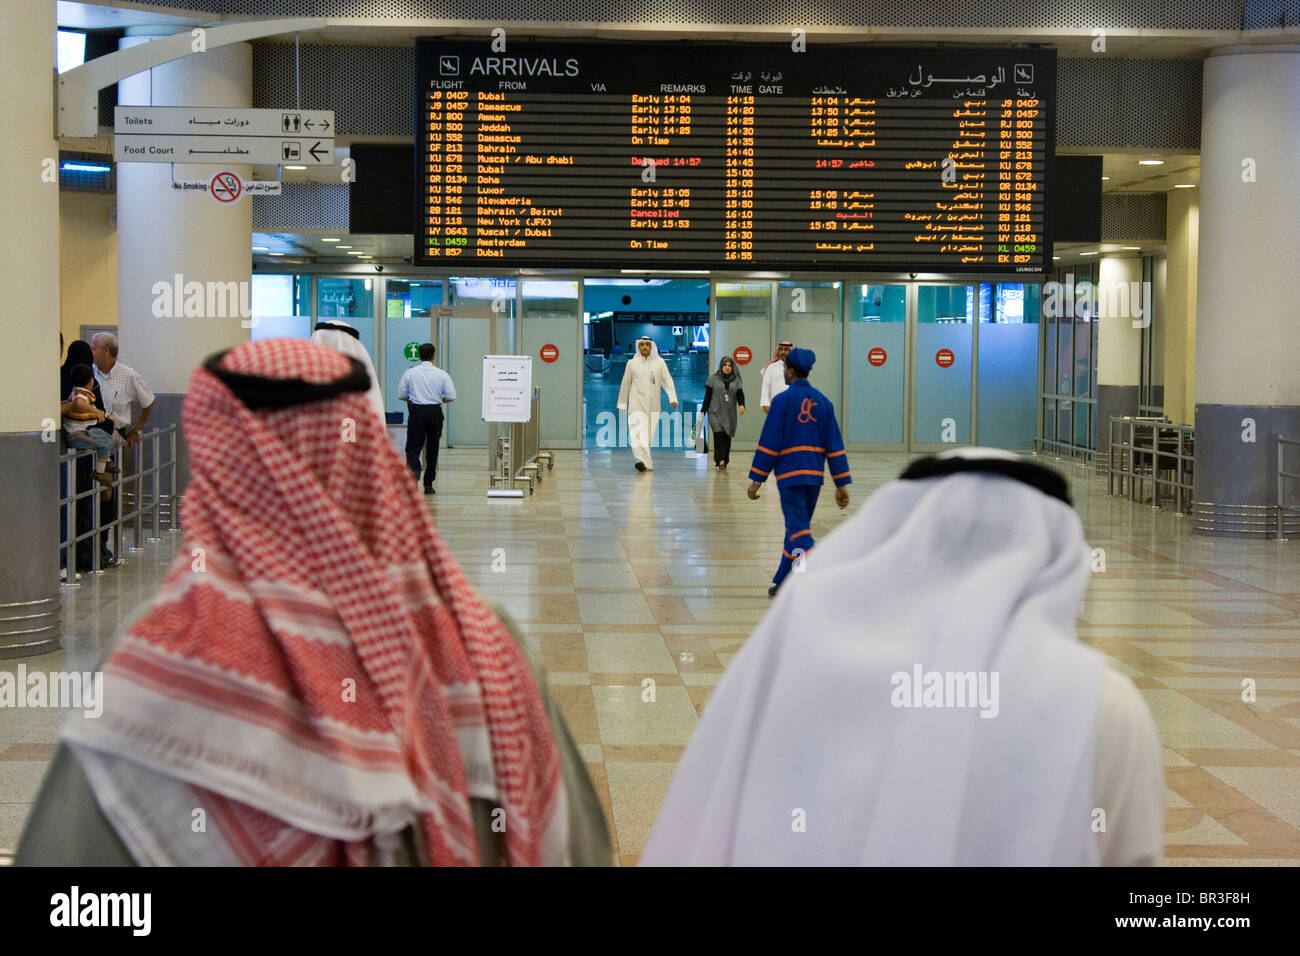 Kuwait International Airport - Stock Image